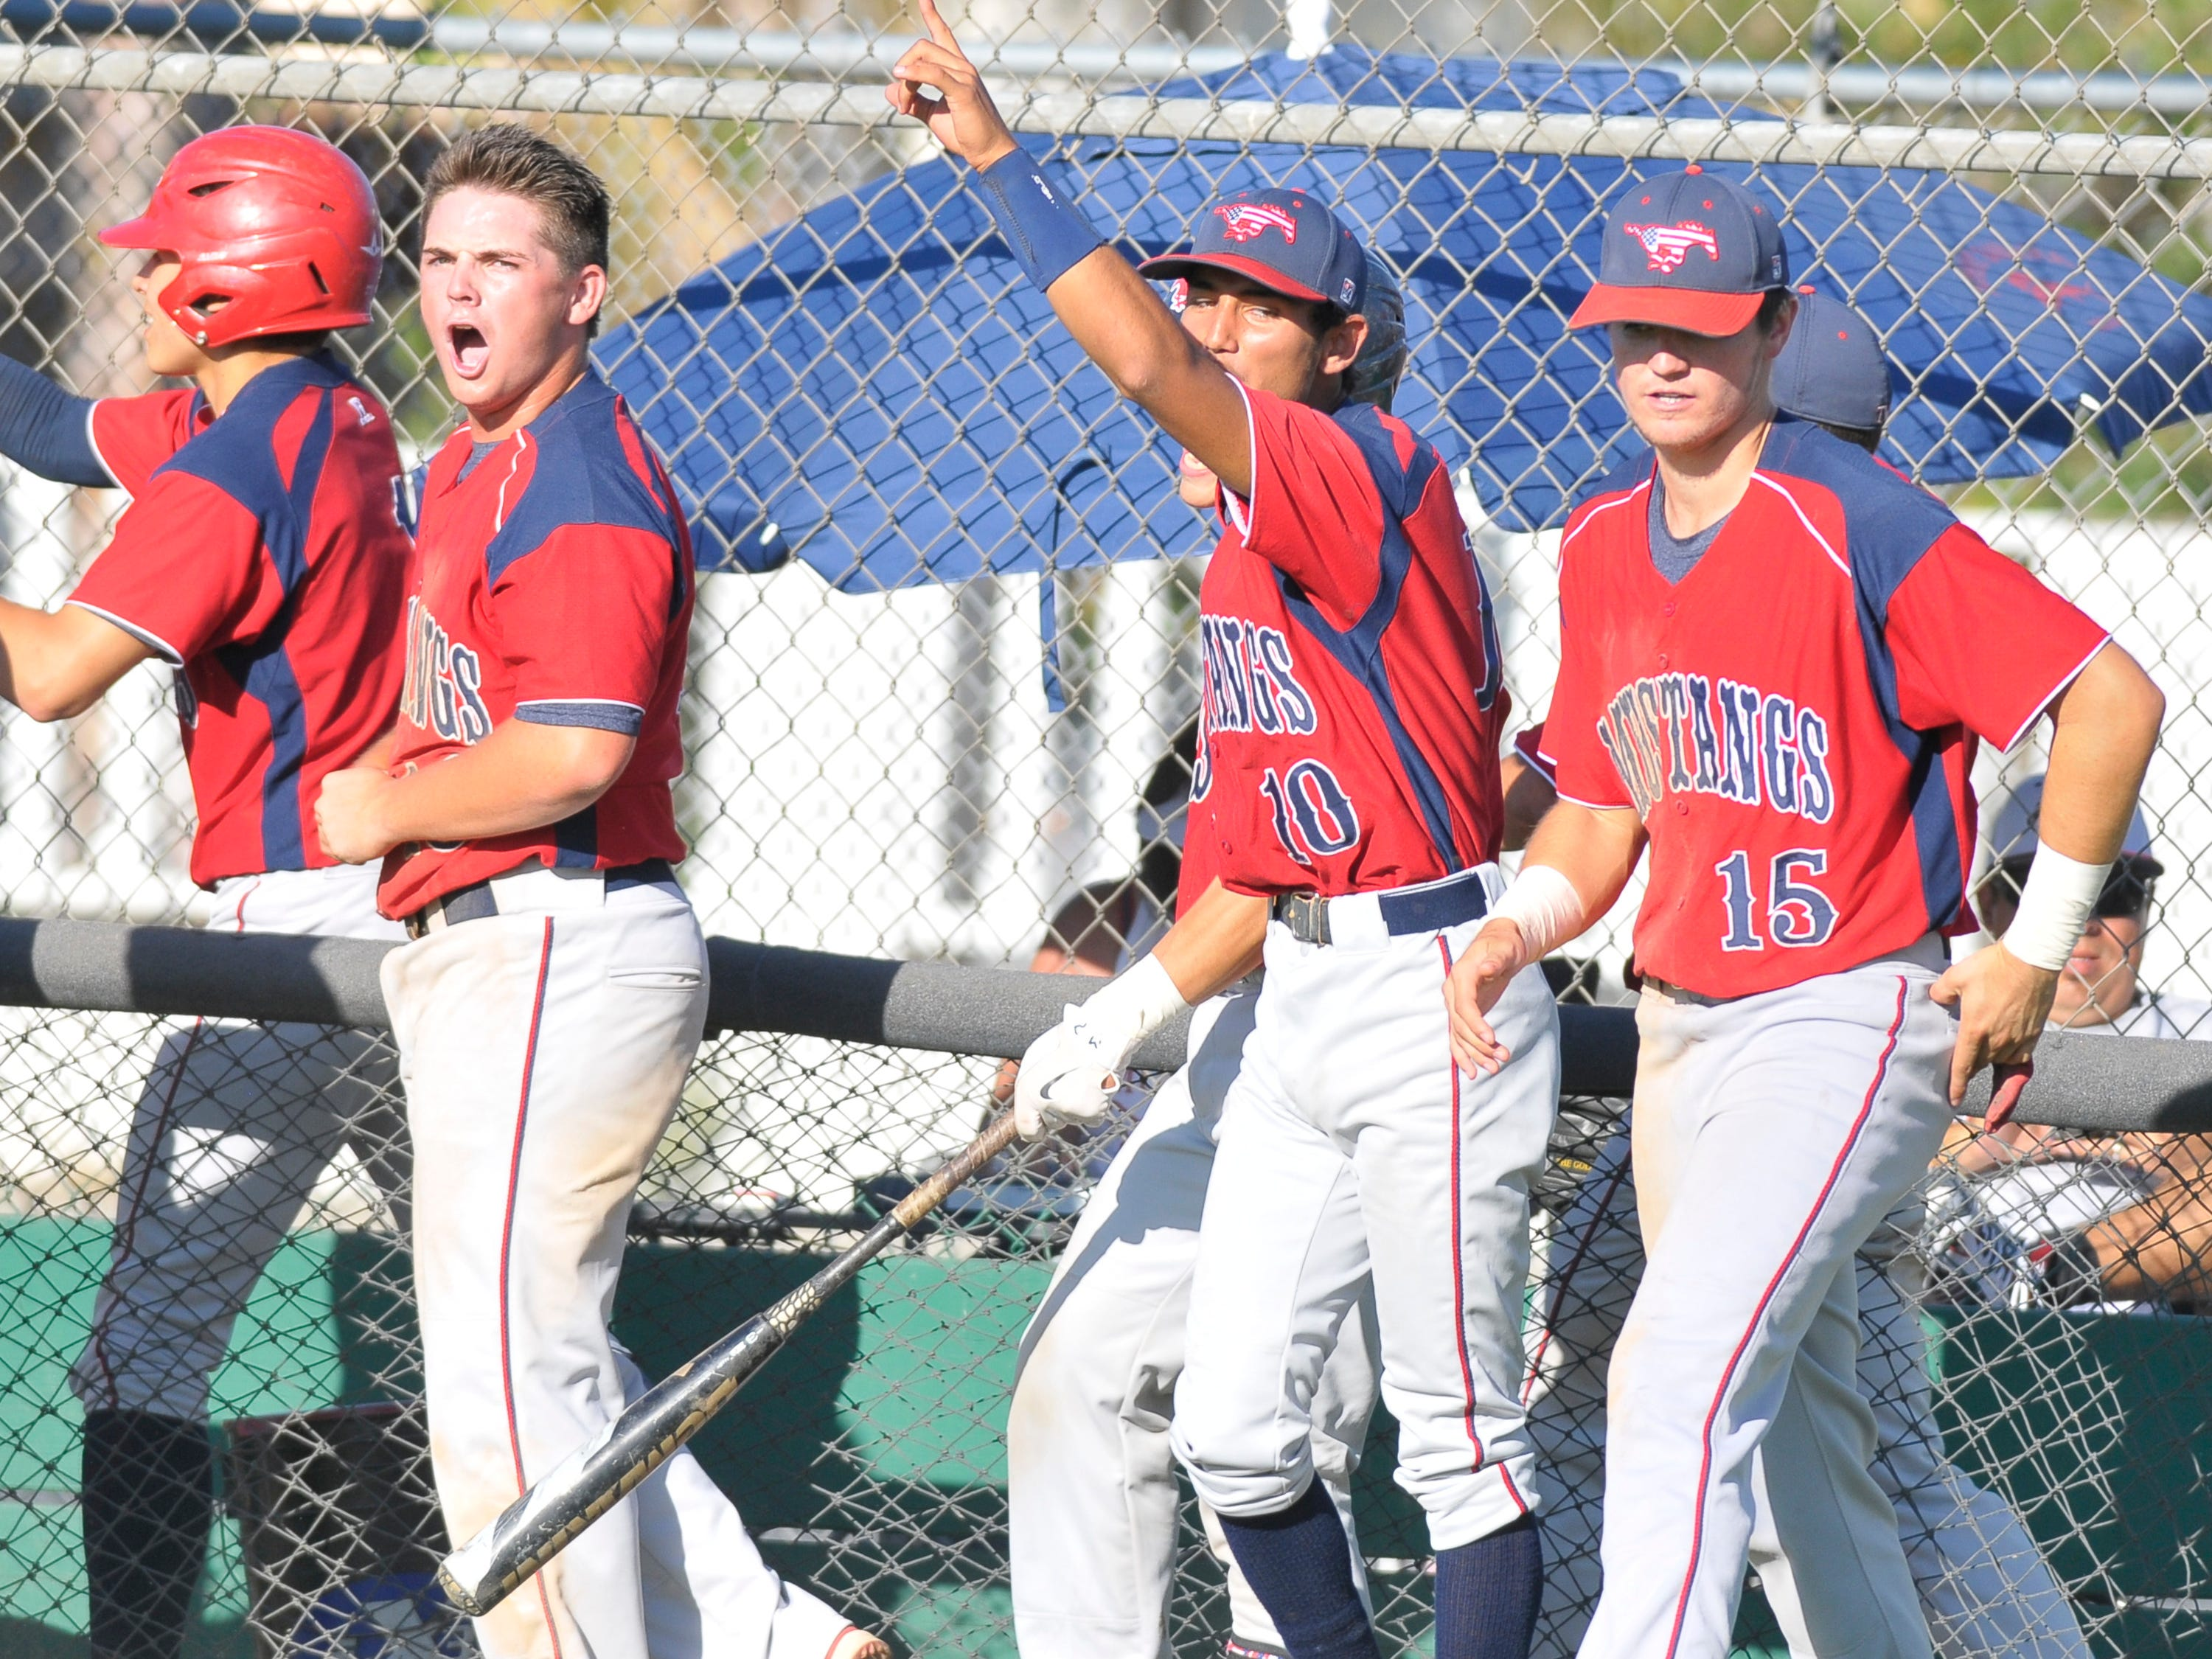 Tulare Western players celebrate after a run scores for the Mustangs during their 6-1 win over Porterville on Tuesday.